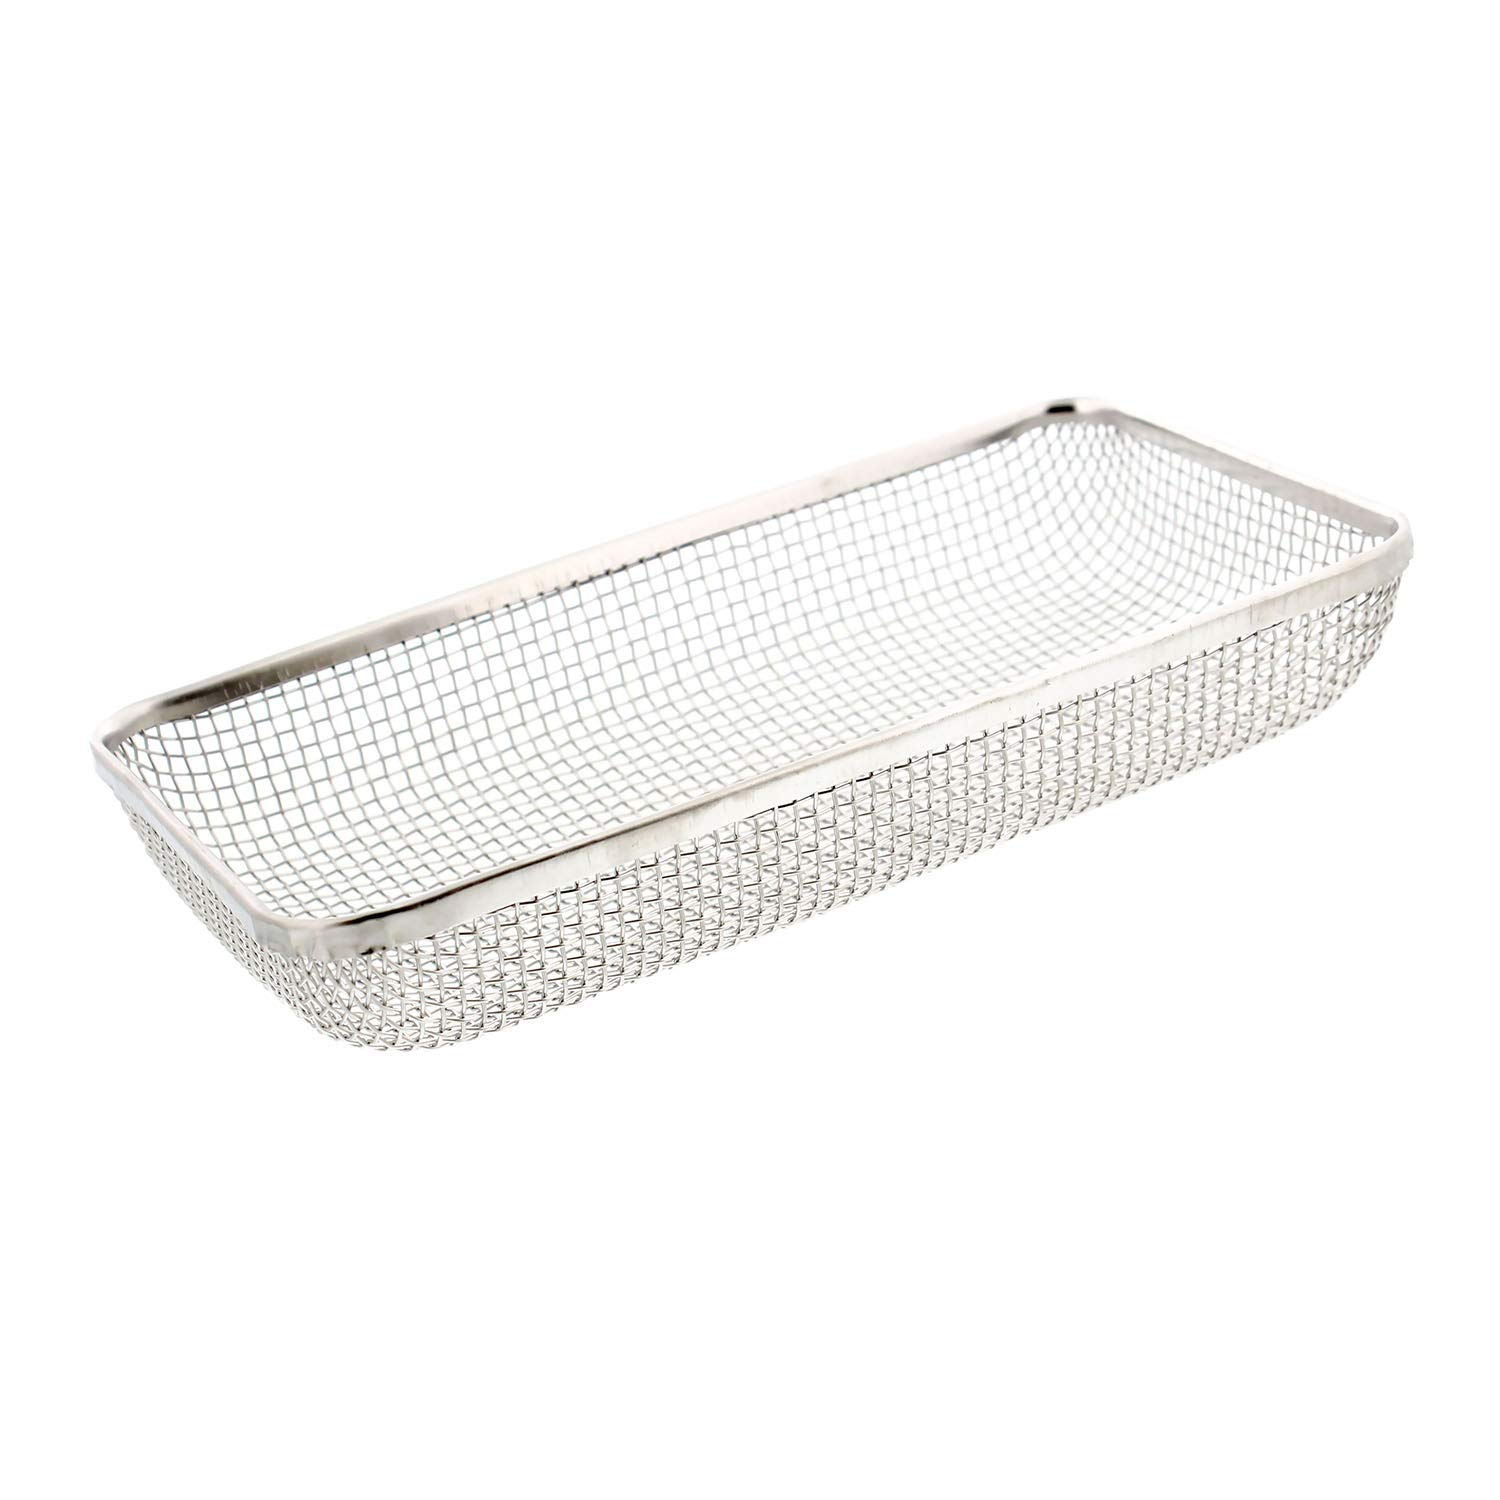 ABN RV Furnace Vent Cover Replacement /& Installation Tool 4.1 x 7.5 x 1.3 Inch Camper Trailer Bug Insect Screen